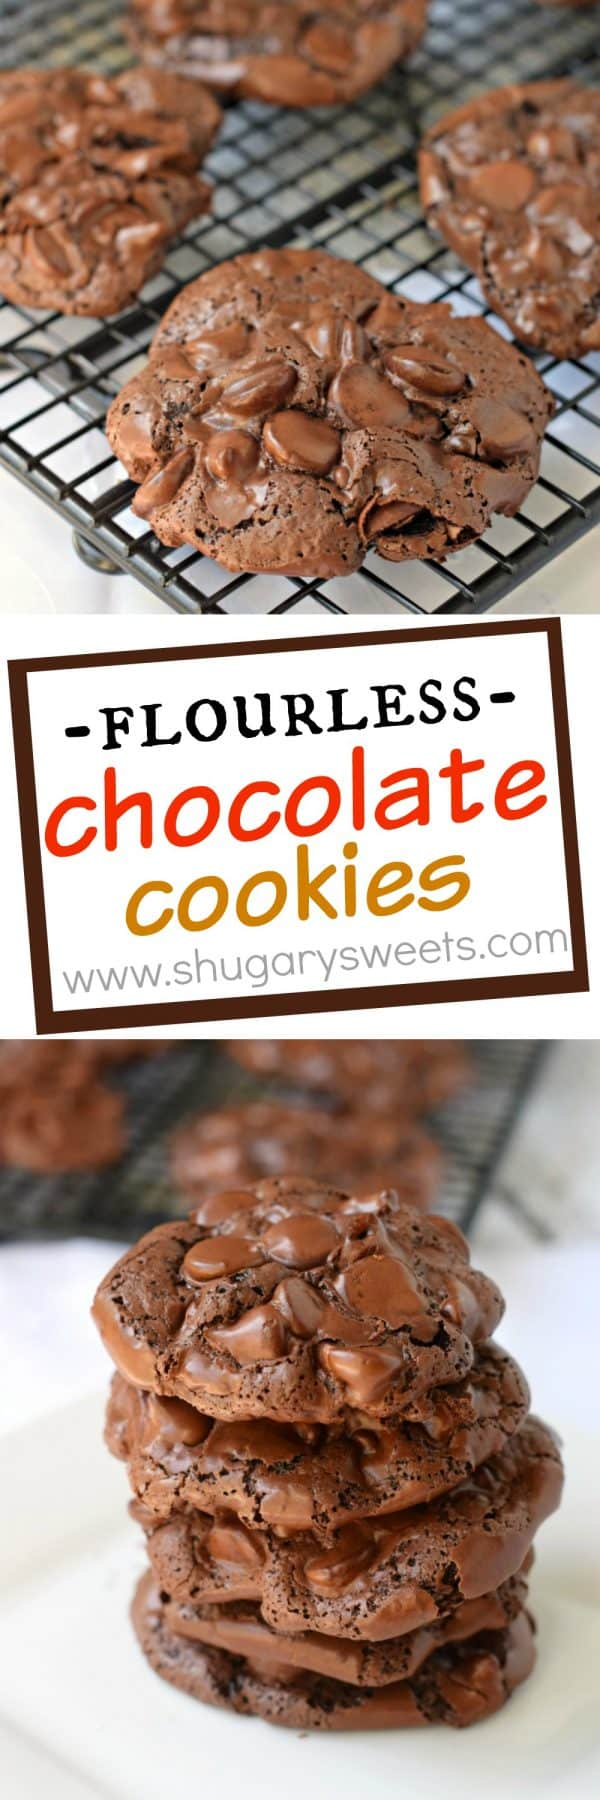 These Flourless Chocolate Cookies are a chewy cookie with a crunchy topping! You'll love the rich chocolate flavor in a unique cookie! Move over Starbucks, we've got a copycat recipe on our hands!